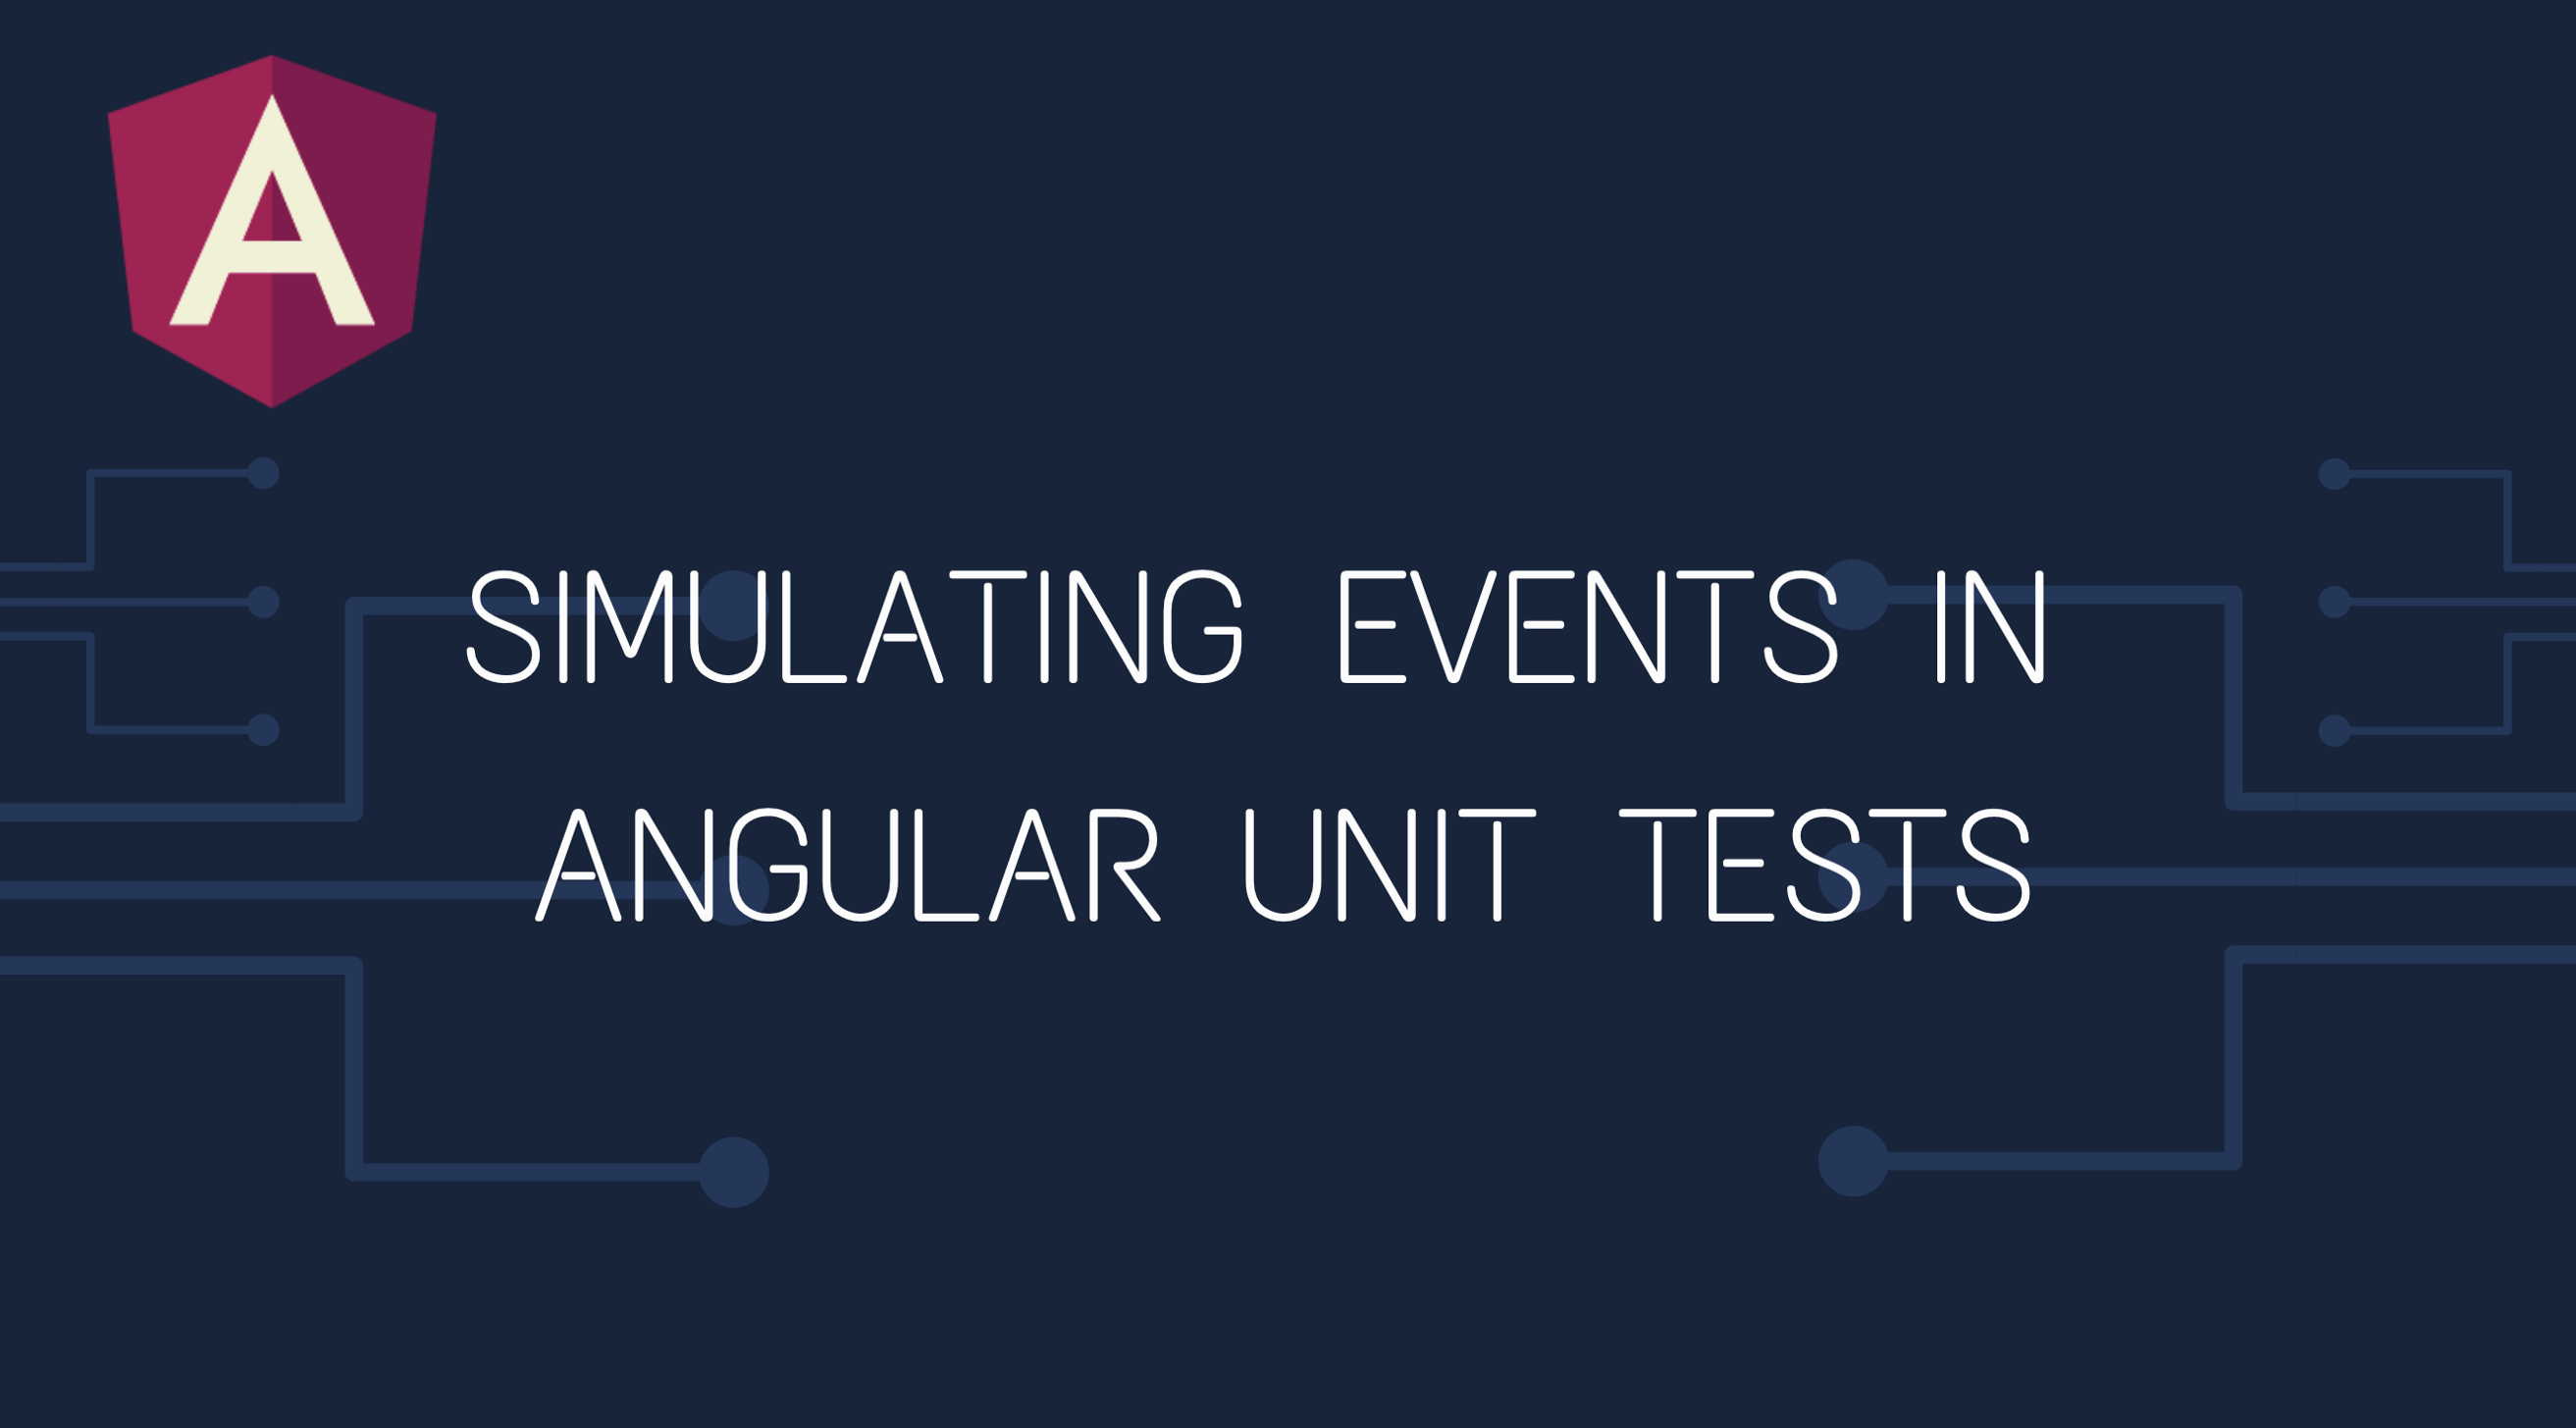 Simulating Events in Angular Unit Tests - Netanel Basal